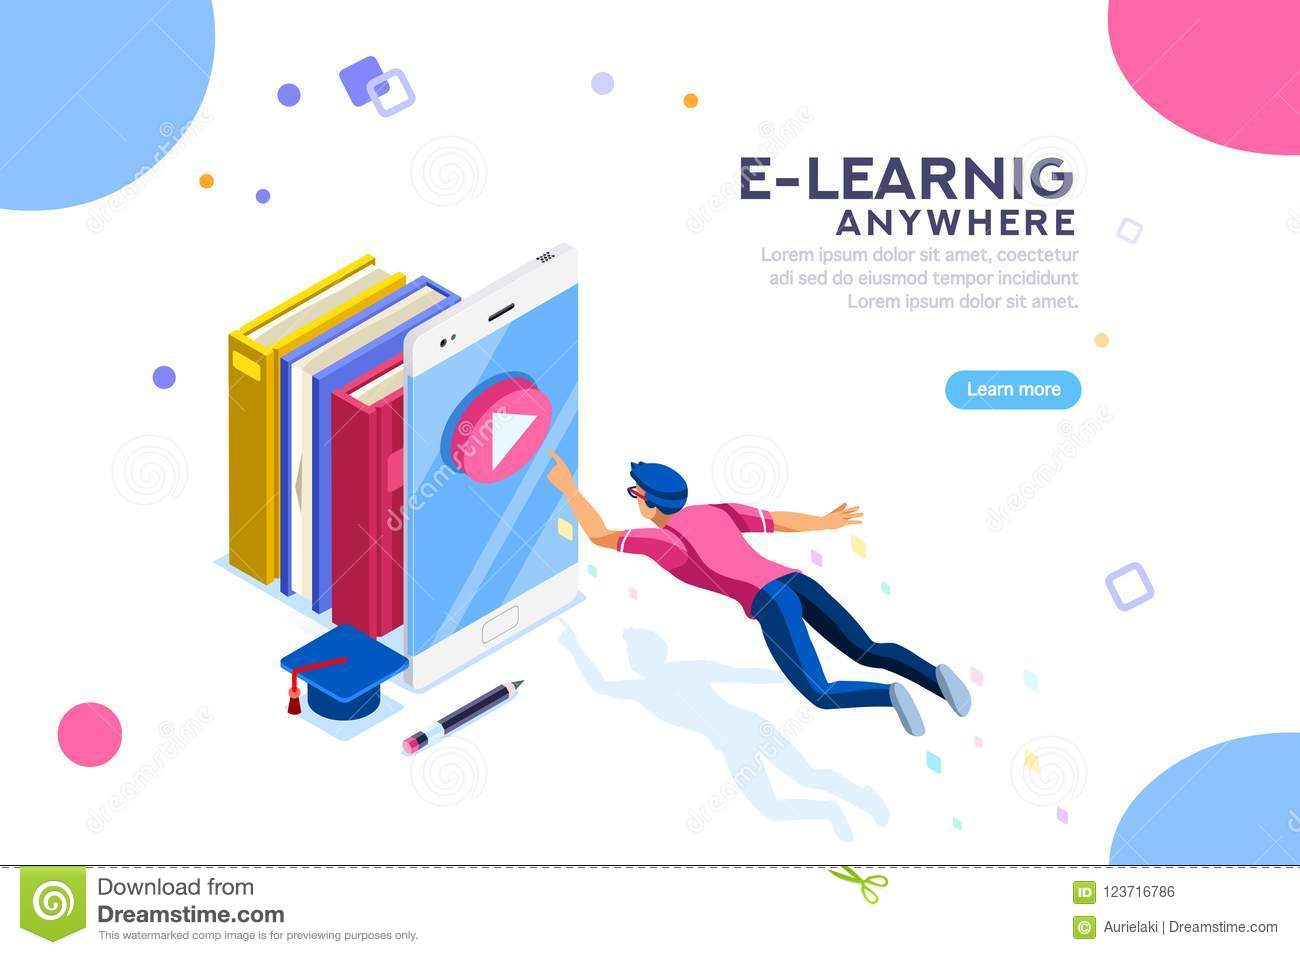 Tutorial Search E-Learning Anywhere Banner